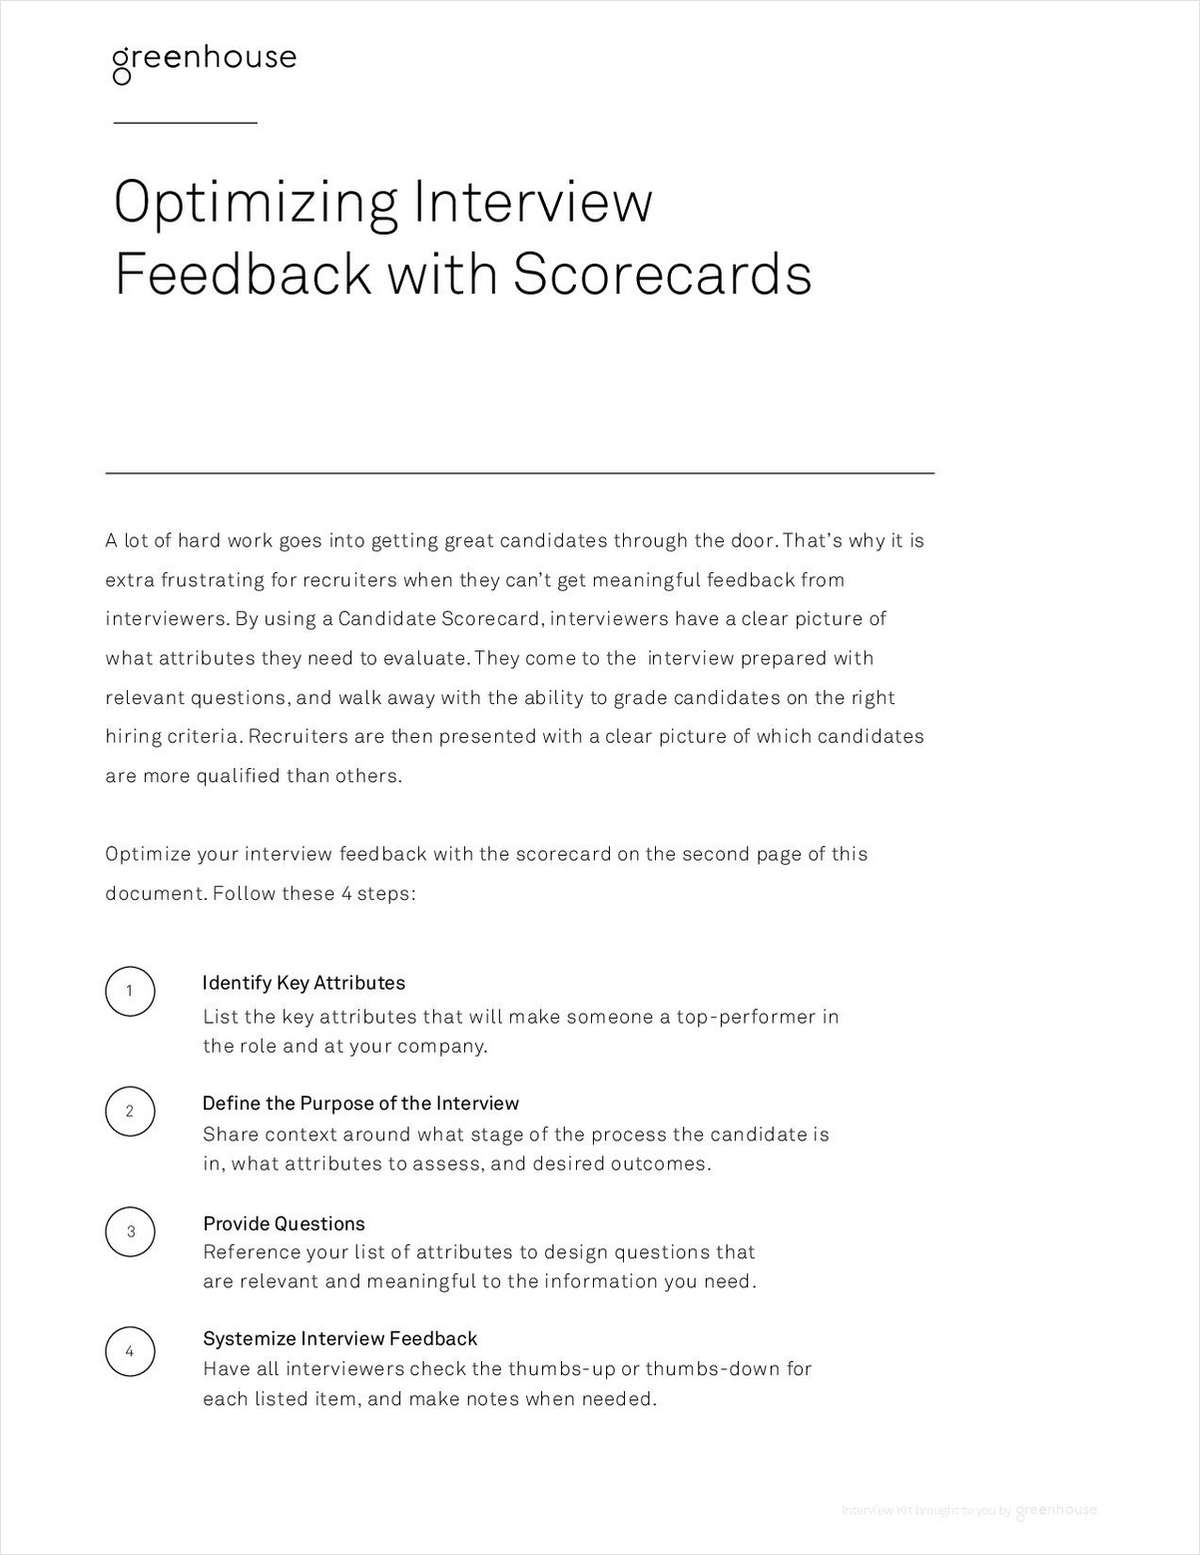 Interview Feedback Scorecard